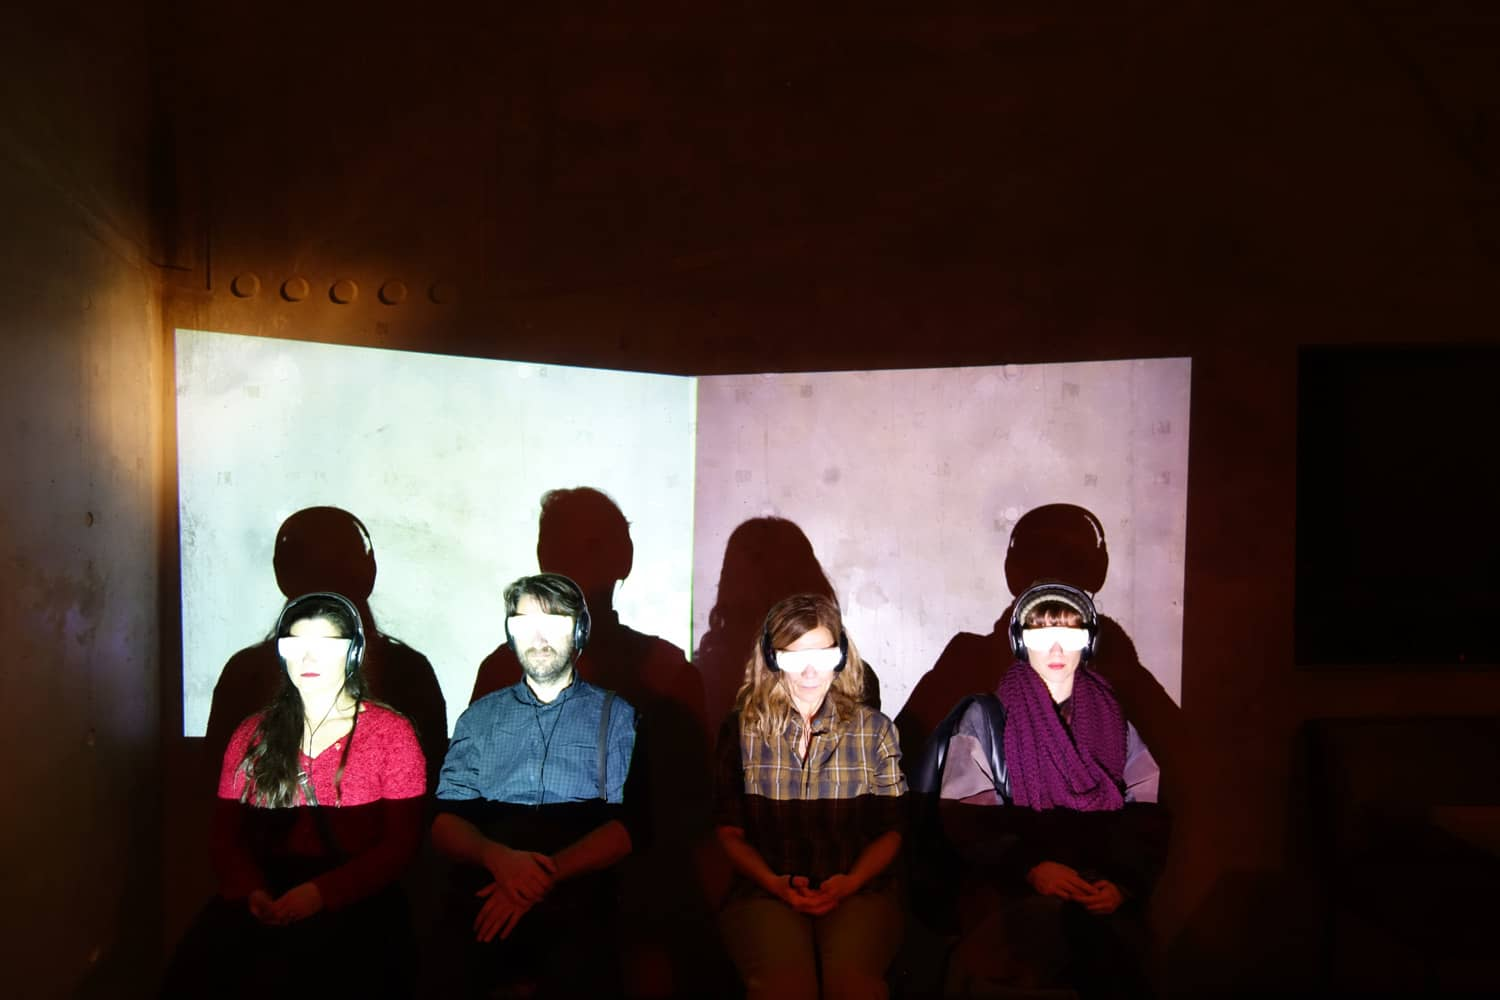 Through the Looking Glasses by Andrea Bozic, Julia Willms and Robert Pravda